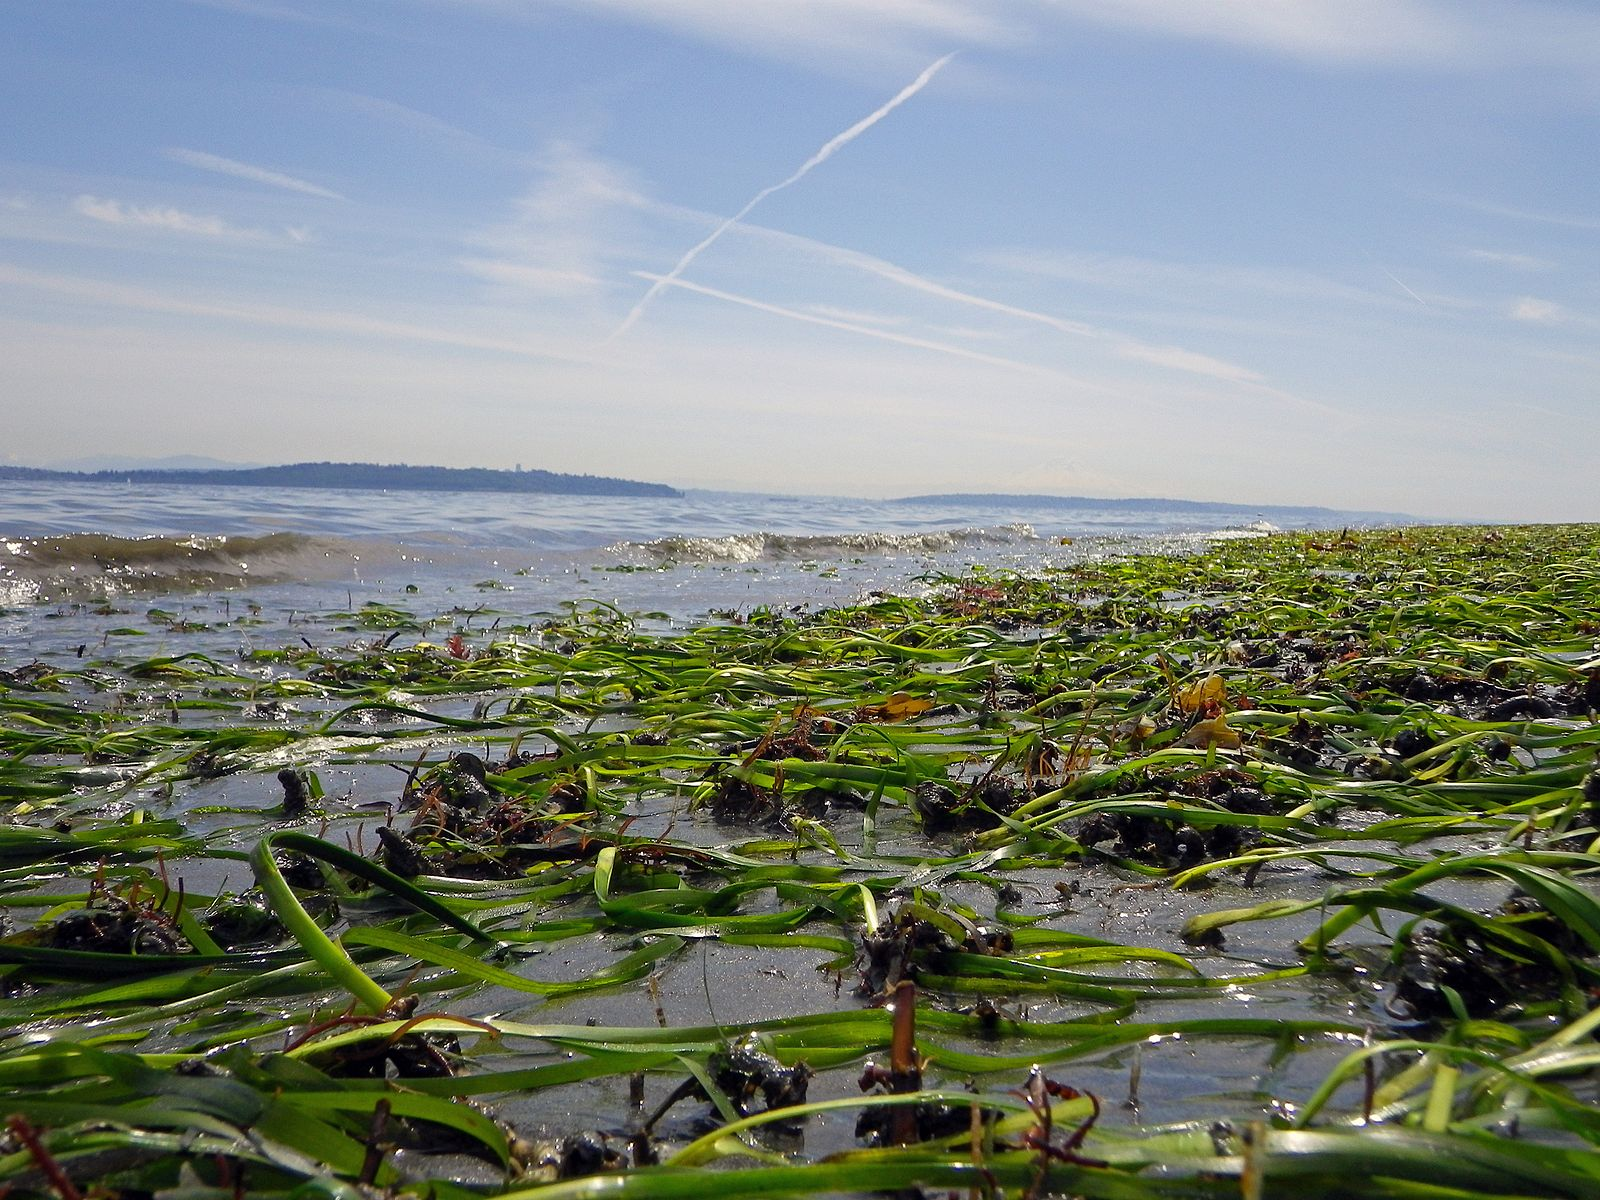 Bainbridge_island_eelgrass_bed.jpg